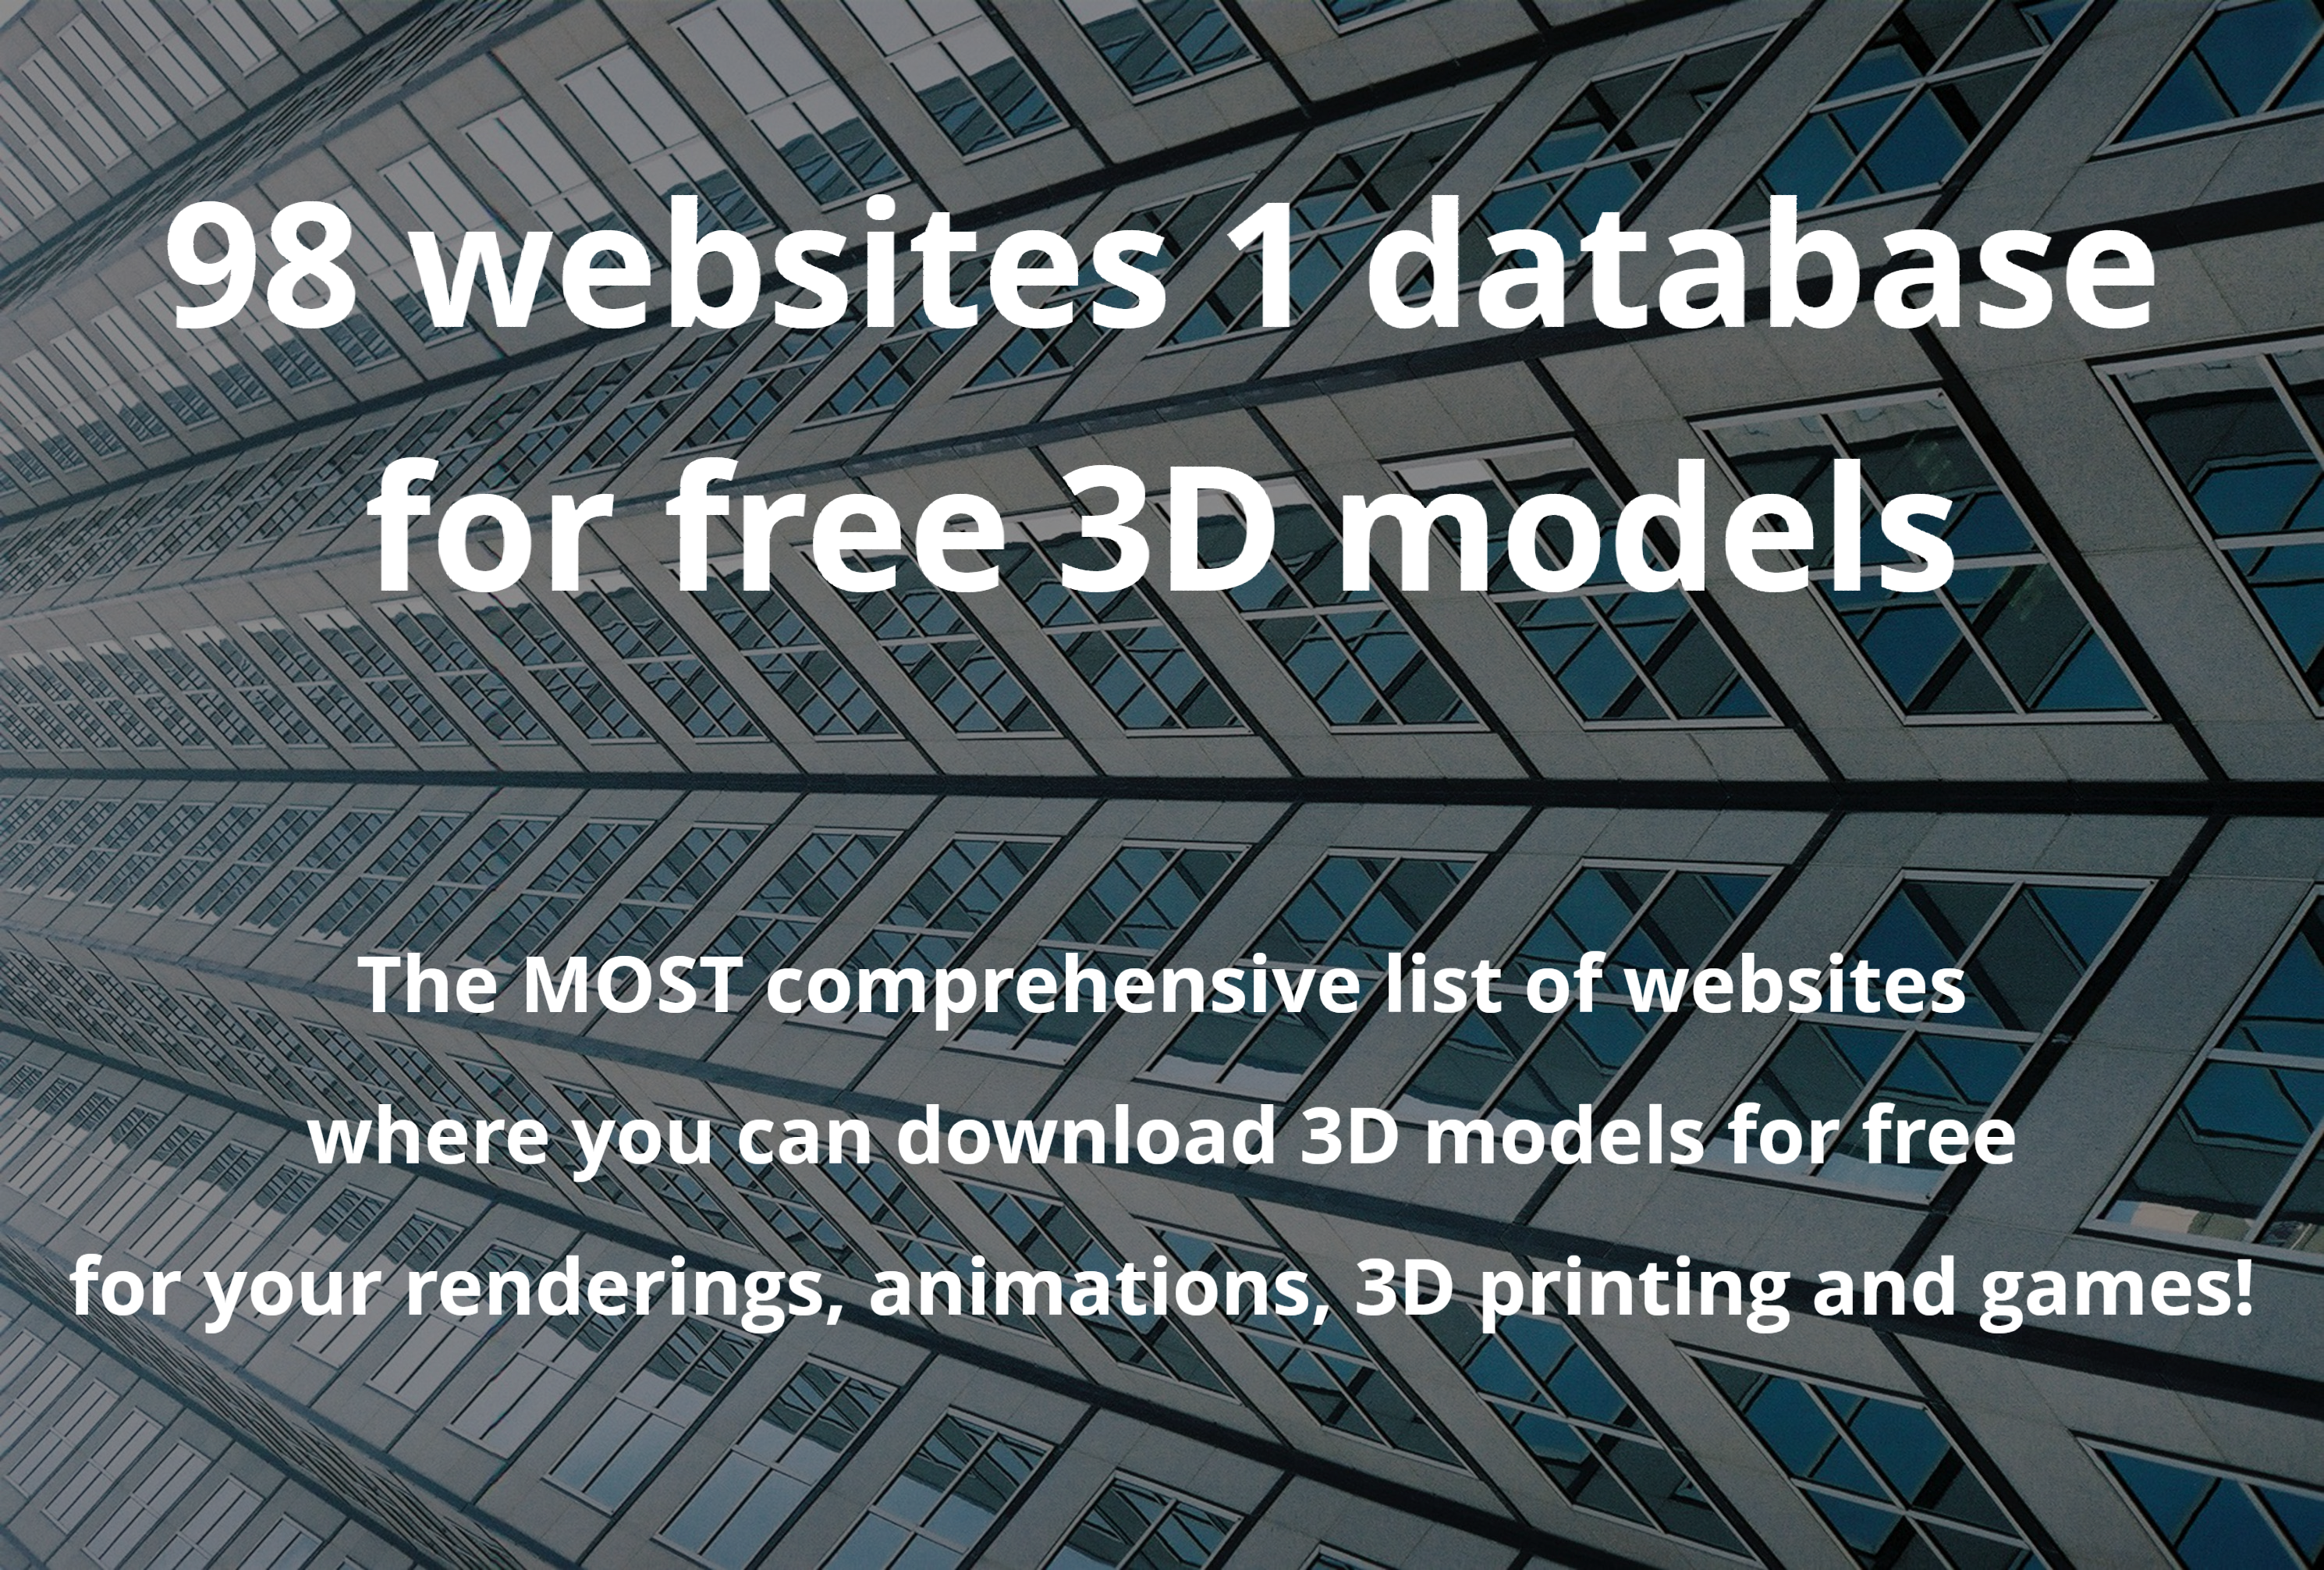 96 websites 1 database